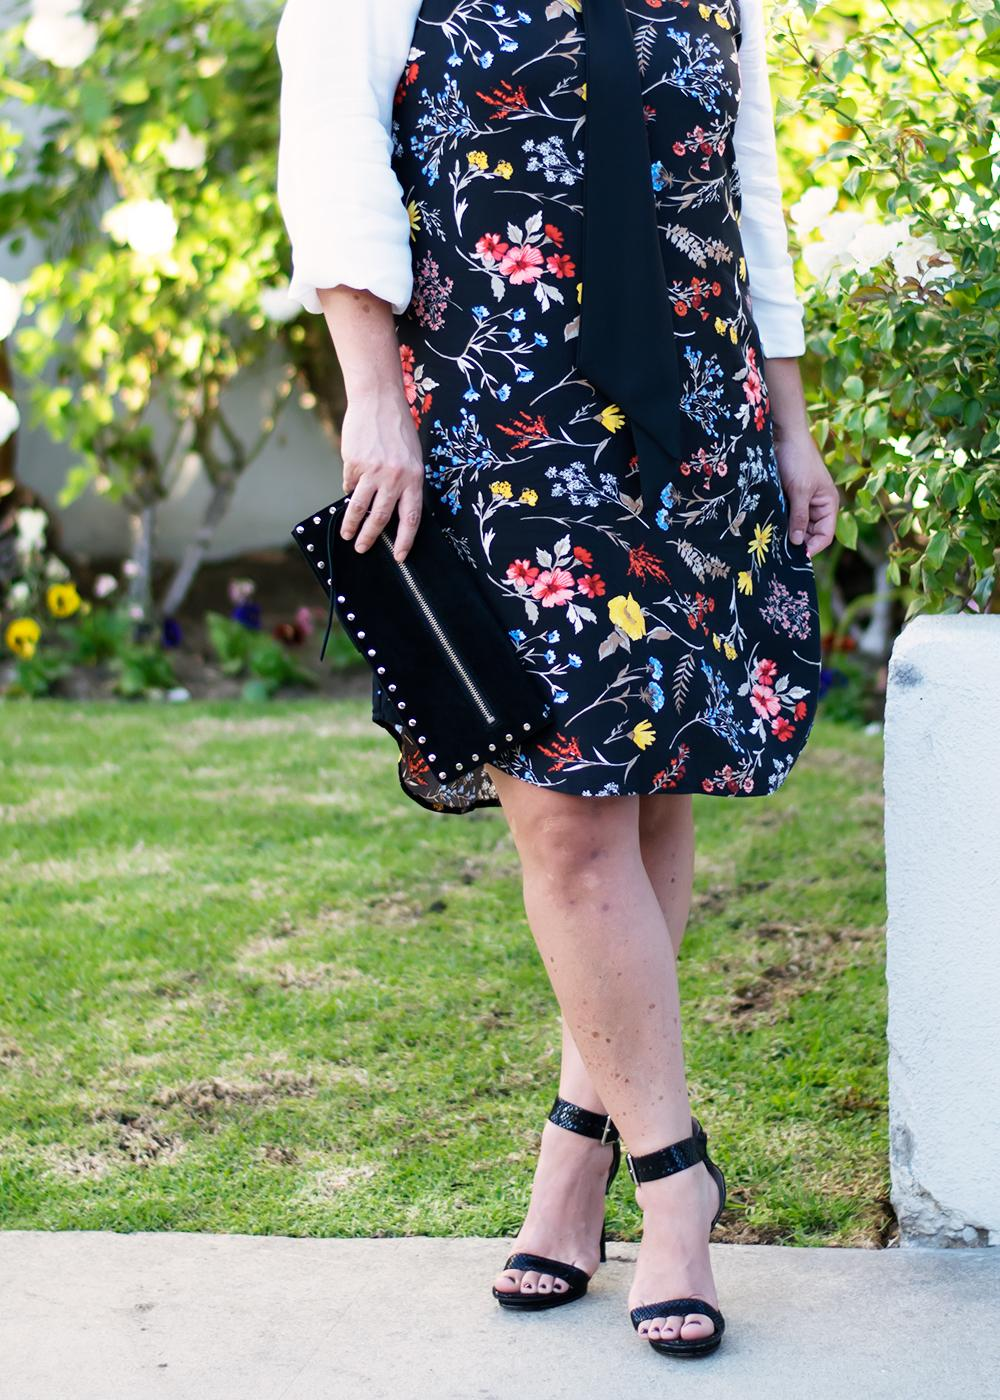 barefoot-in-la-date-night-outfit-fashion-street-style-blogger